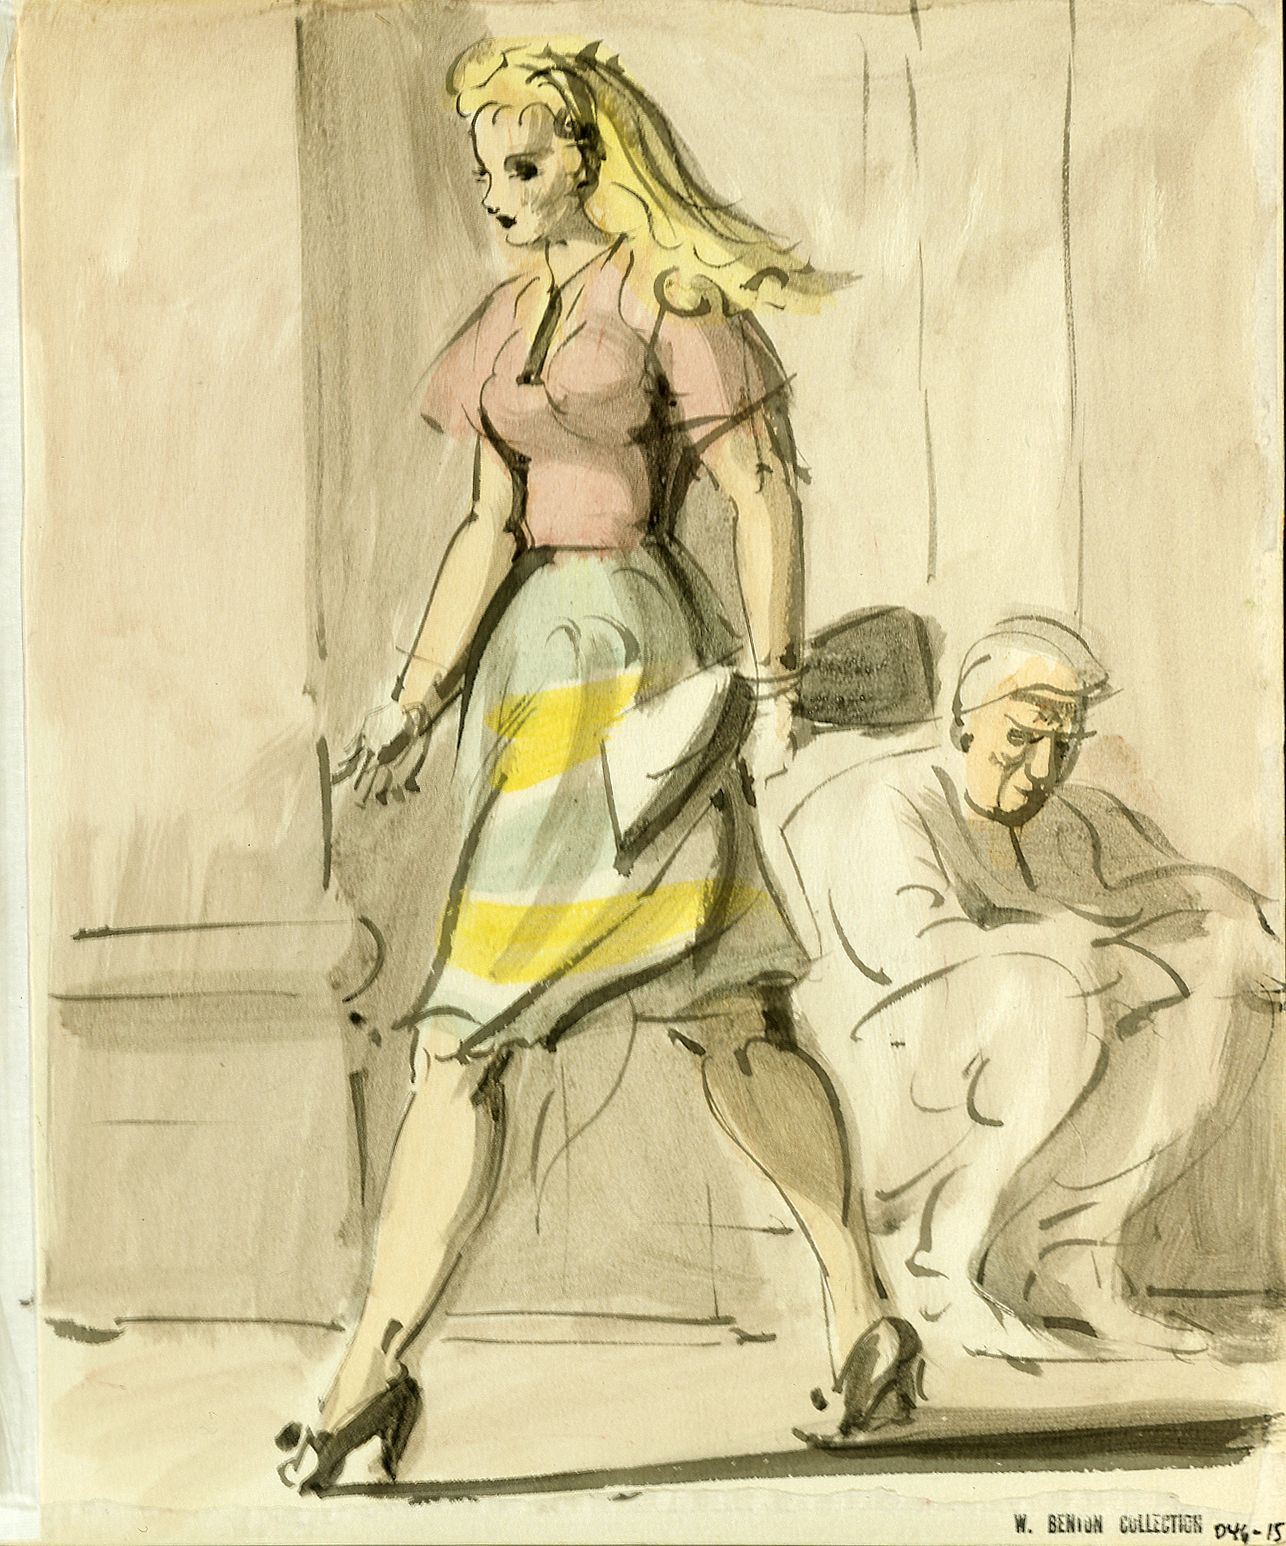 Reginald Marsh, Blonde with Green and Yellow Skirt, c. 1946, watercolor on paper, 10 x 8 inches